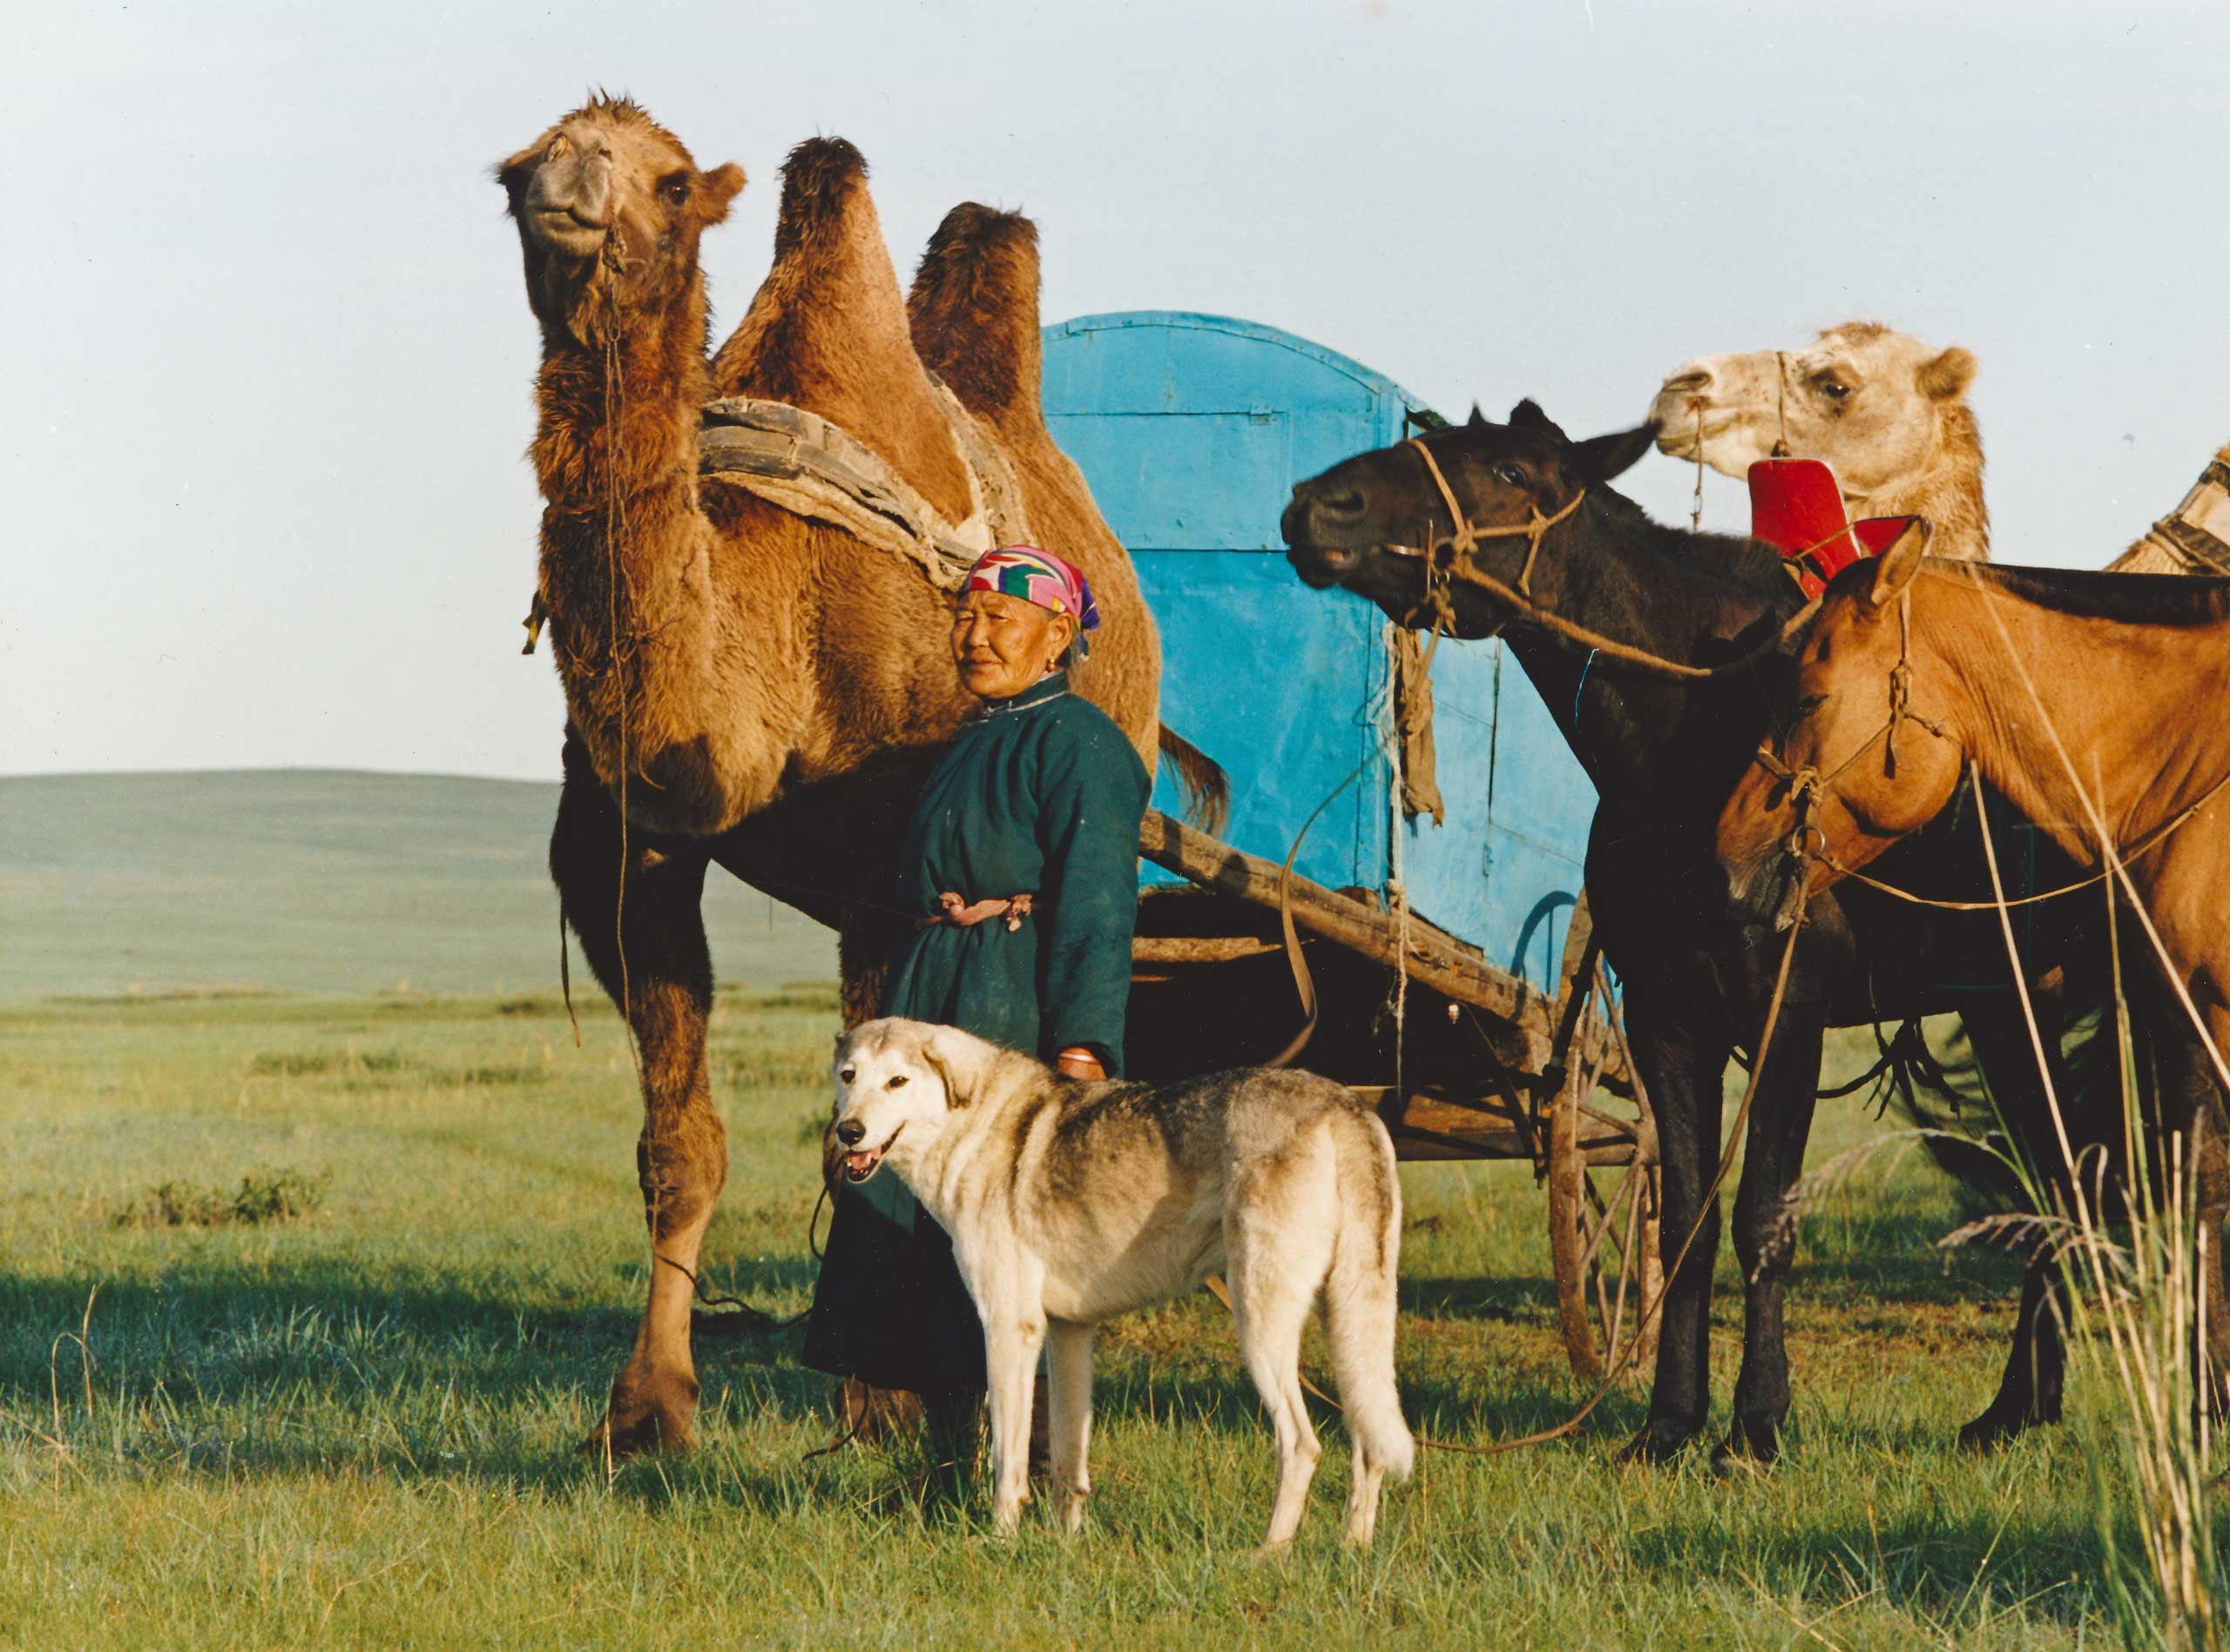 A Mongolian woman with her caravan of animals about to travel to the Galshar Naadam, Khentii Province, Mongolia.